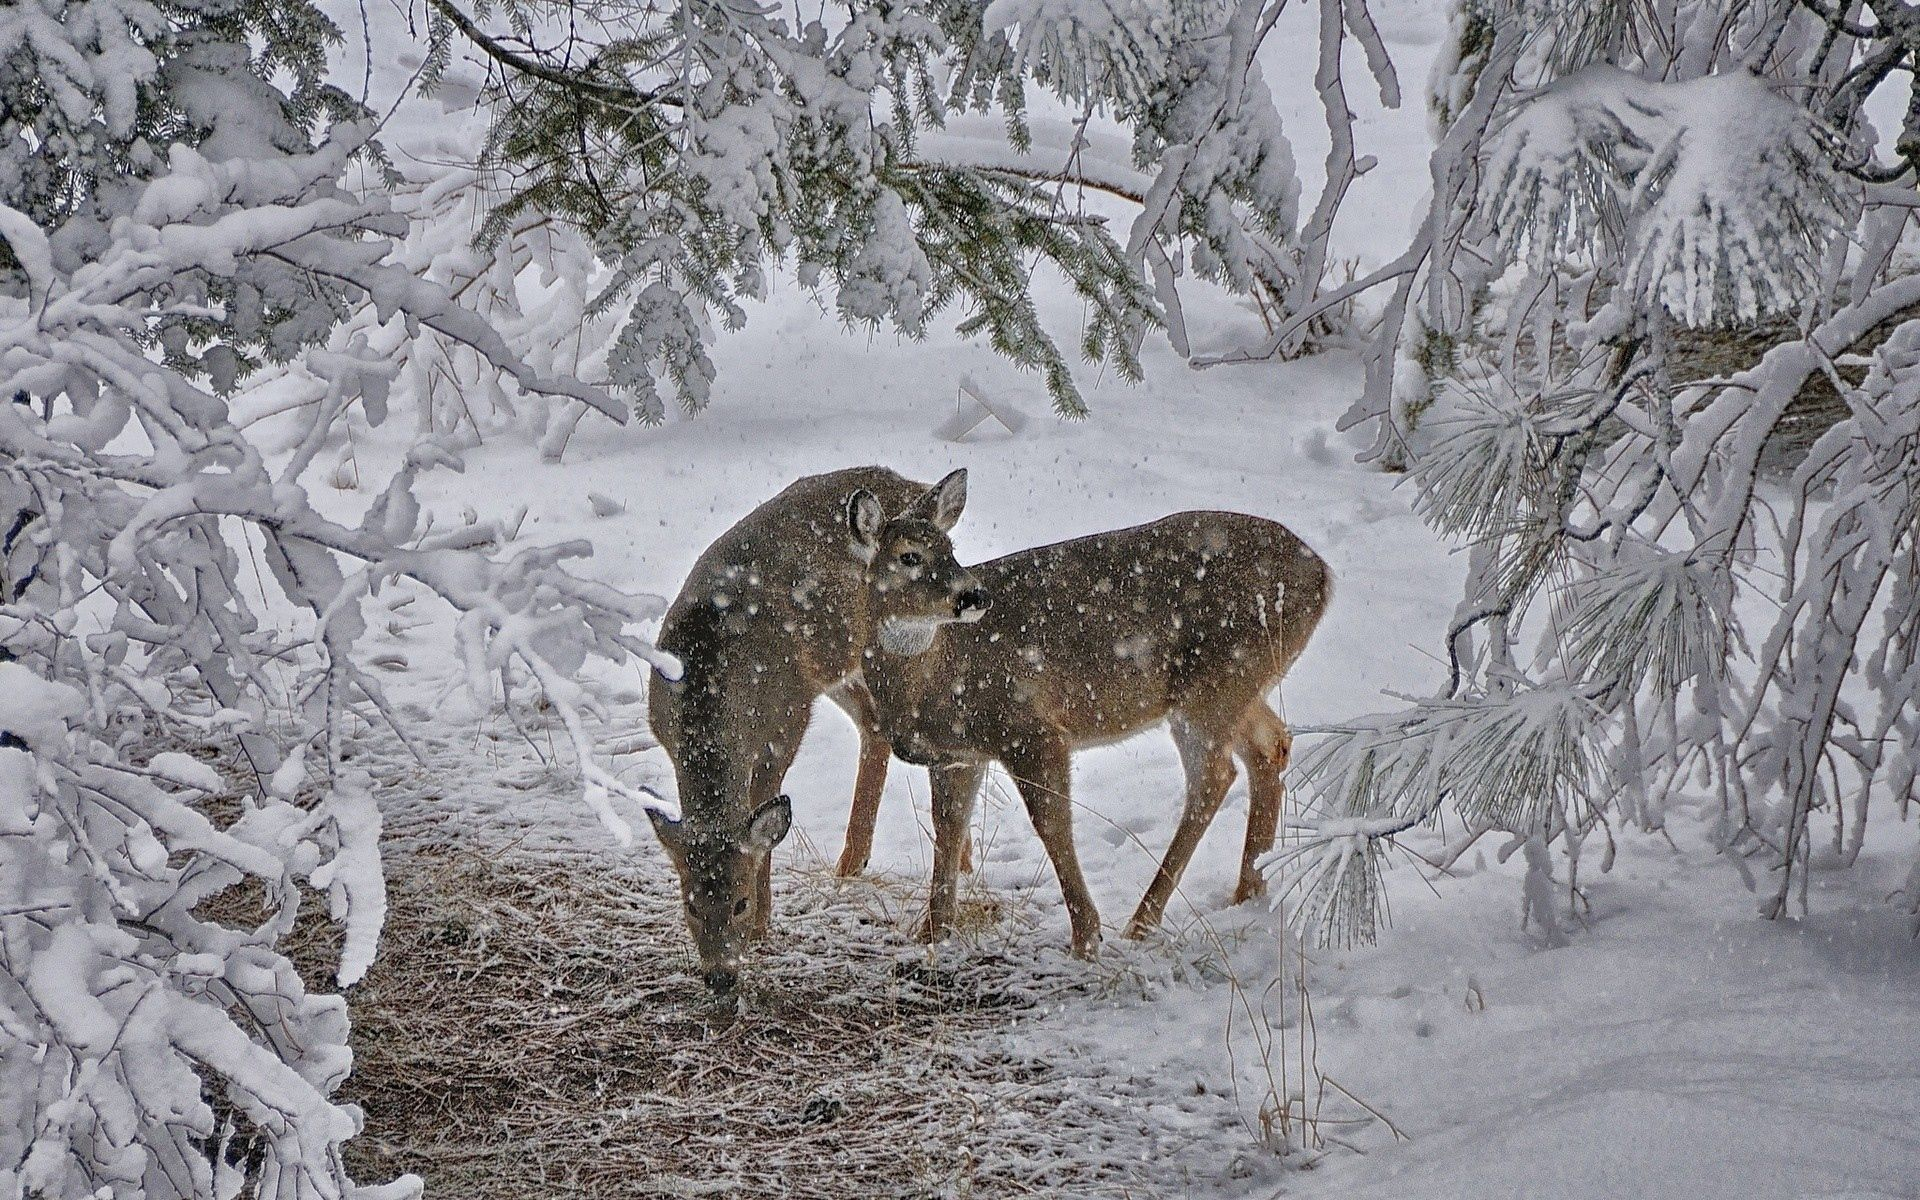 115492 download wallpaper Animals, Deers, Snow, Trees screensavers and pictures for free